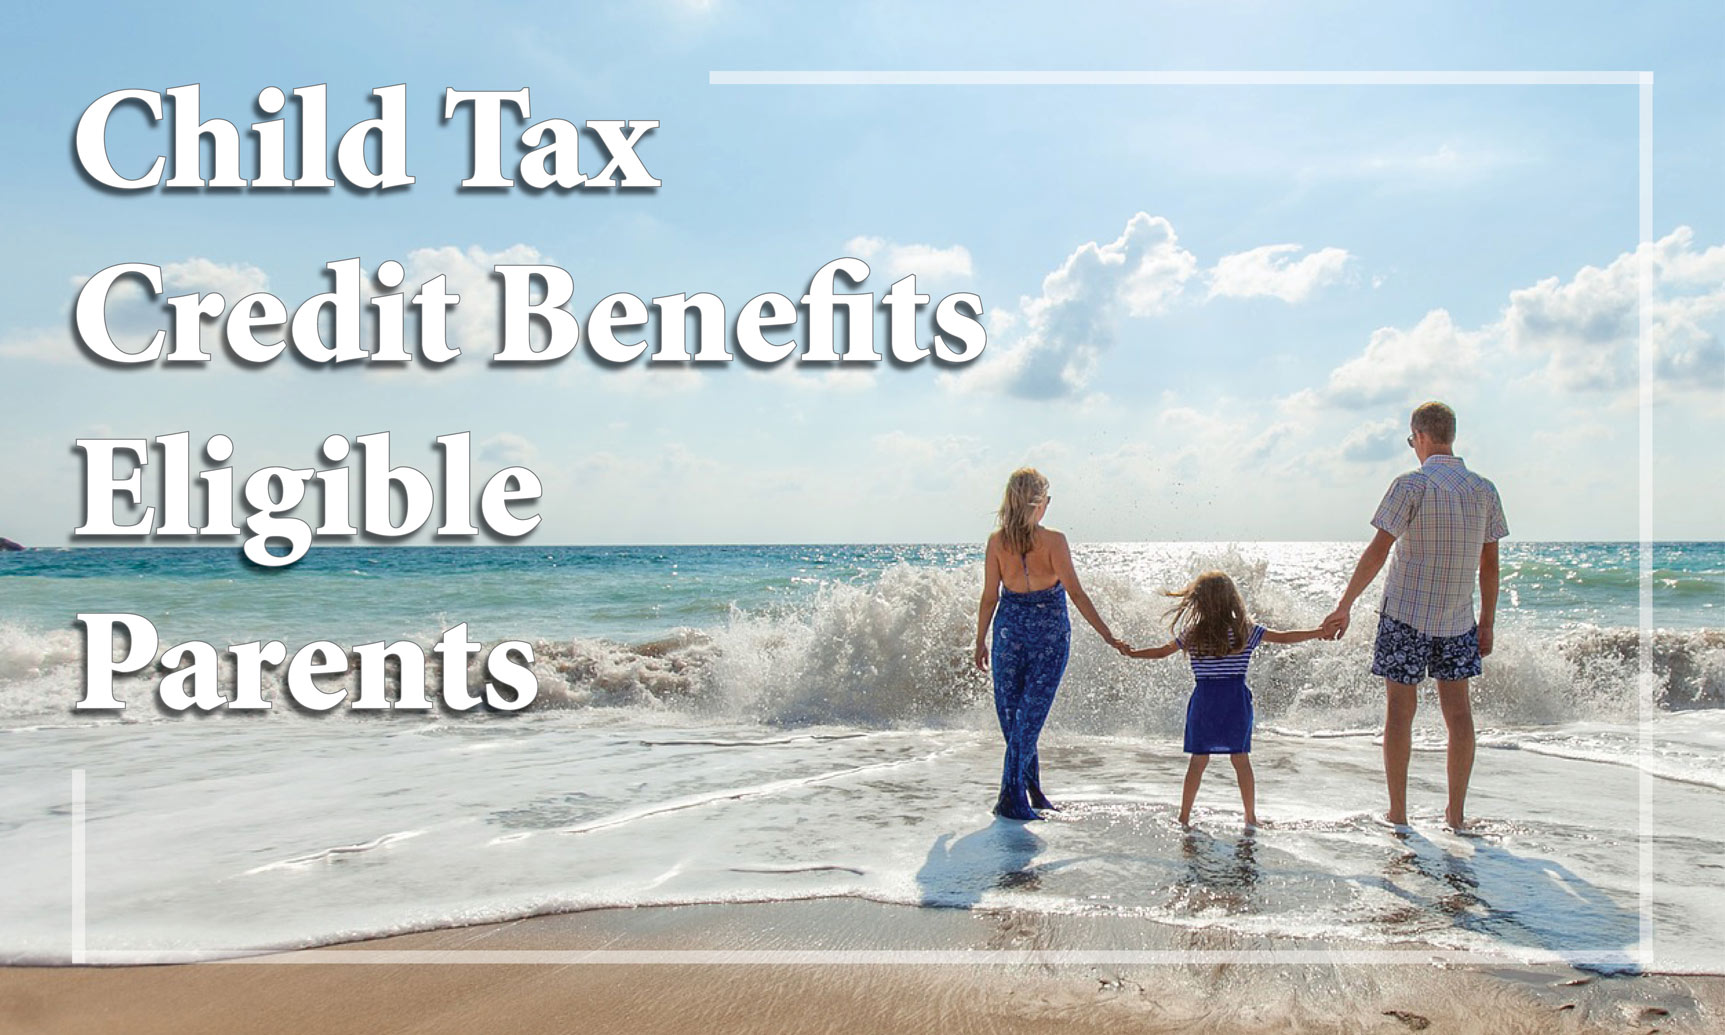 The Child Tax Credit Benefits Eligible Parents